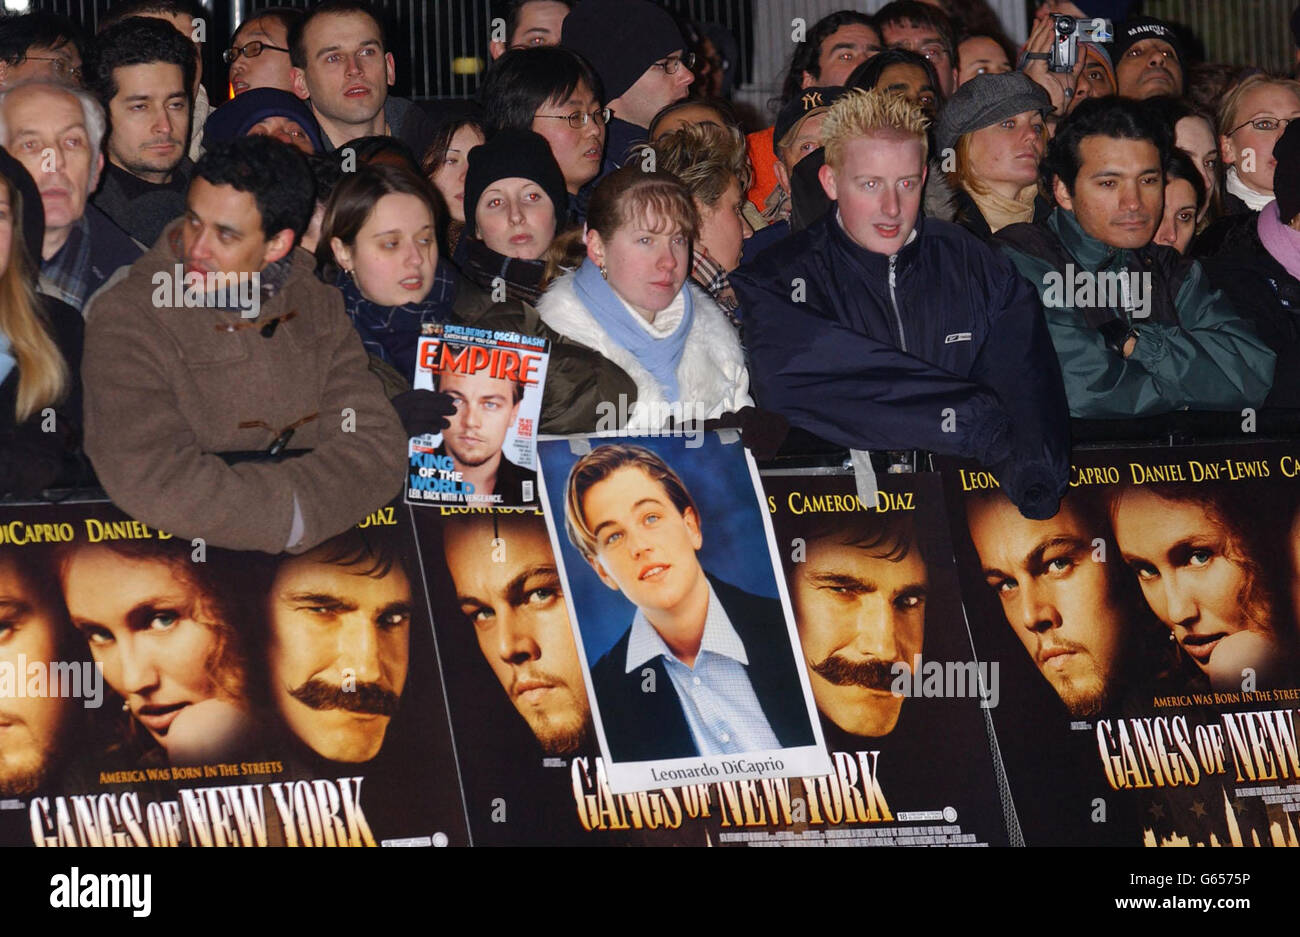 Fans Gangs of New York - Stock Image